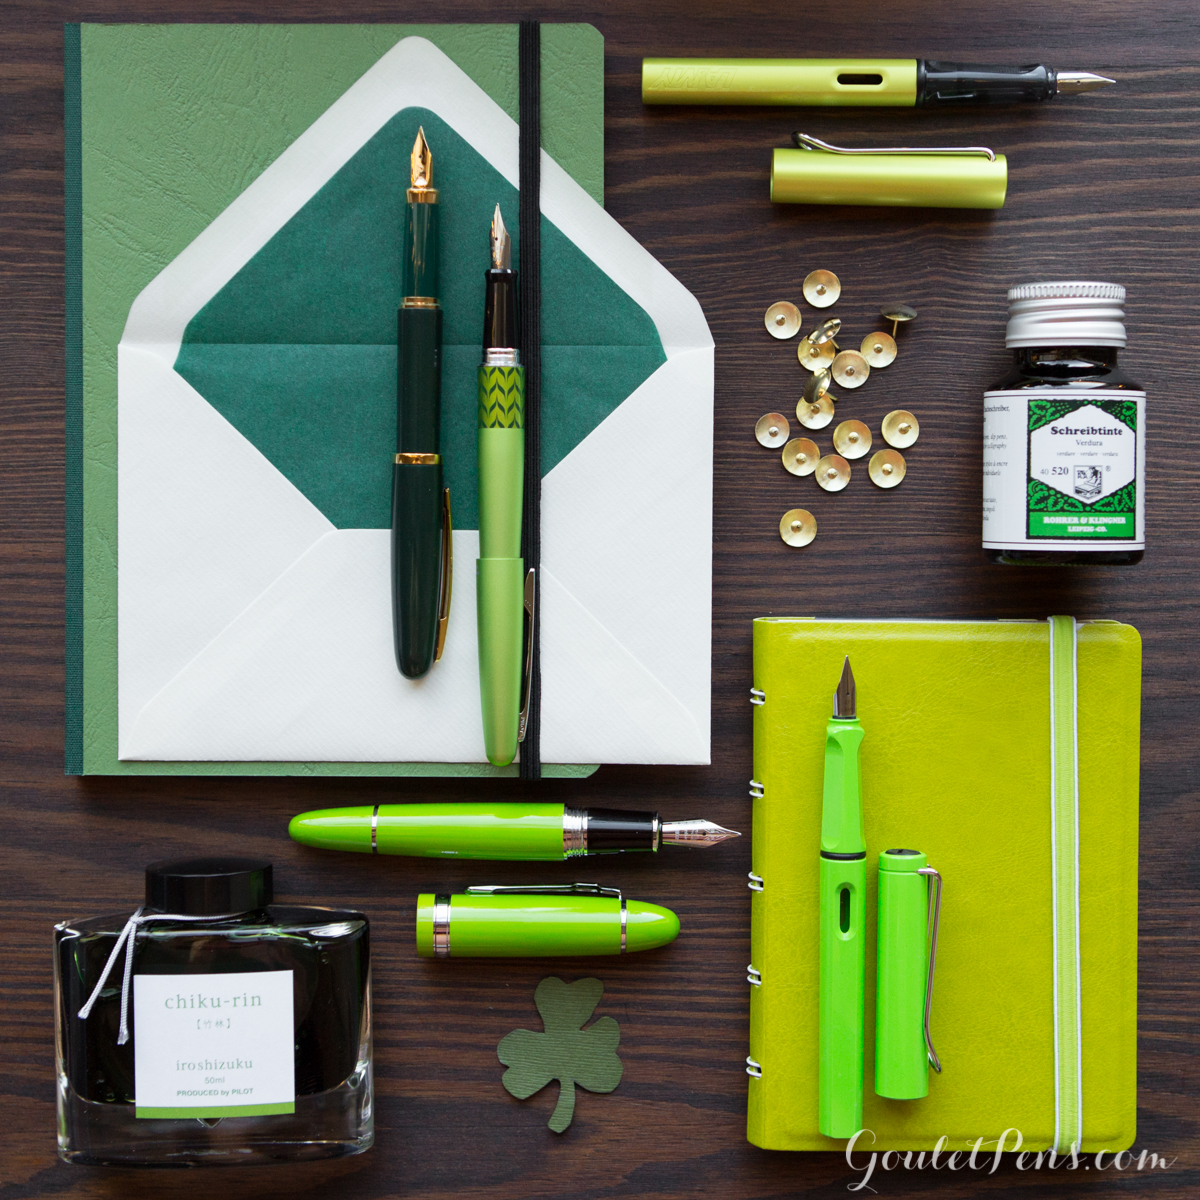 St. Patrick's day green fountain pens, notebooks, ink